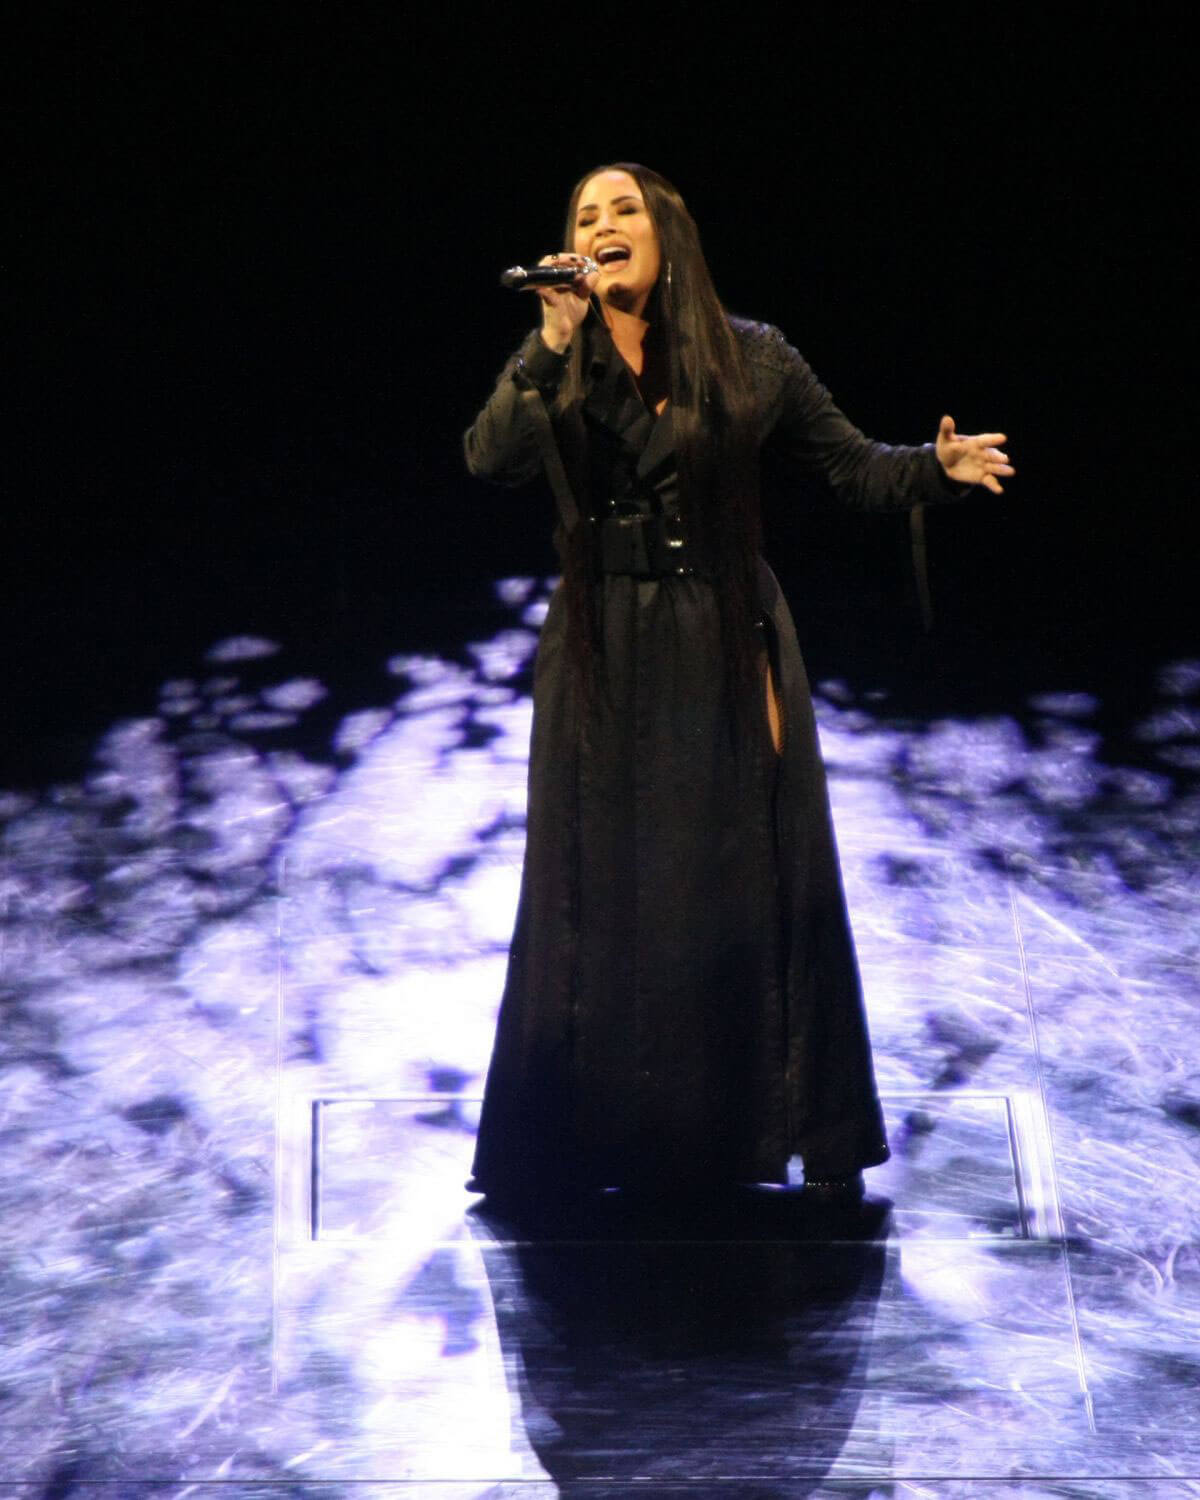 Demi Lovato Performs at a Concert in Dublin 2018/05/25